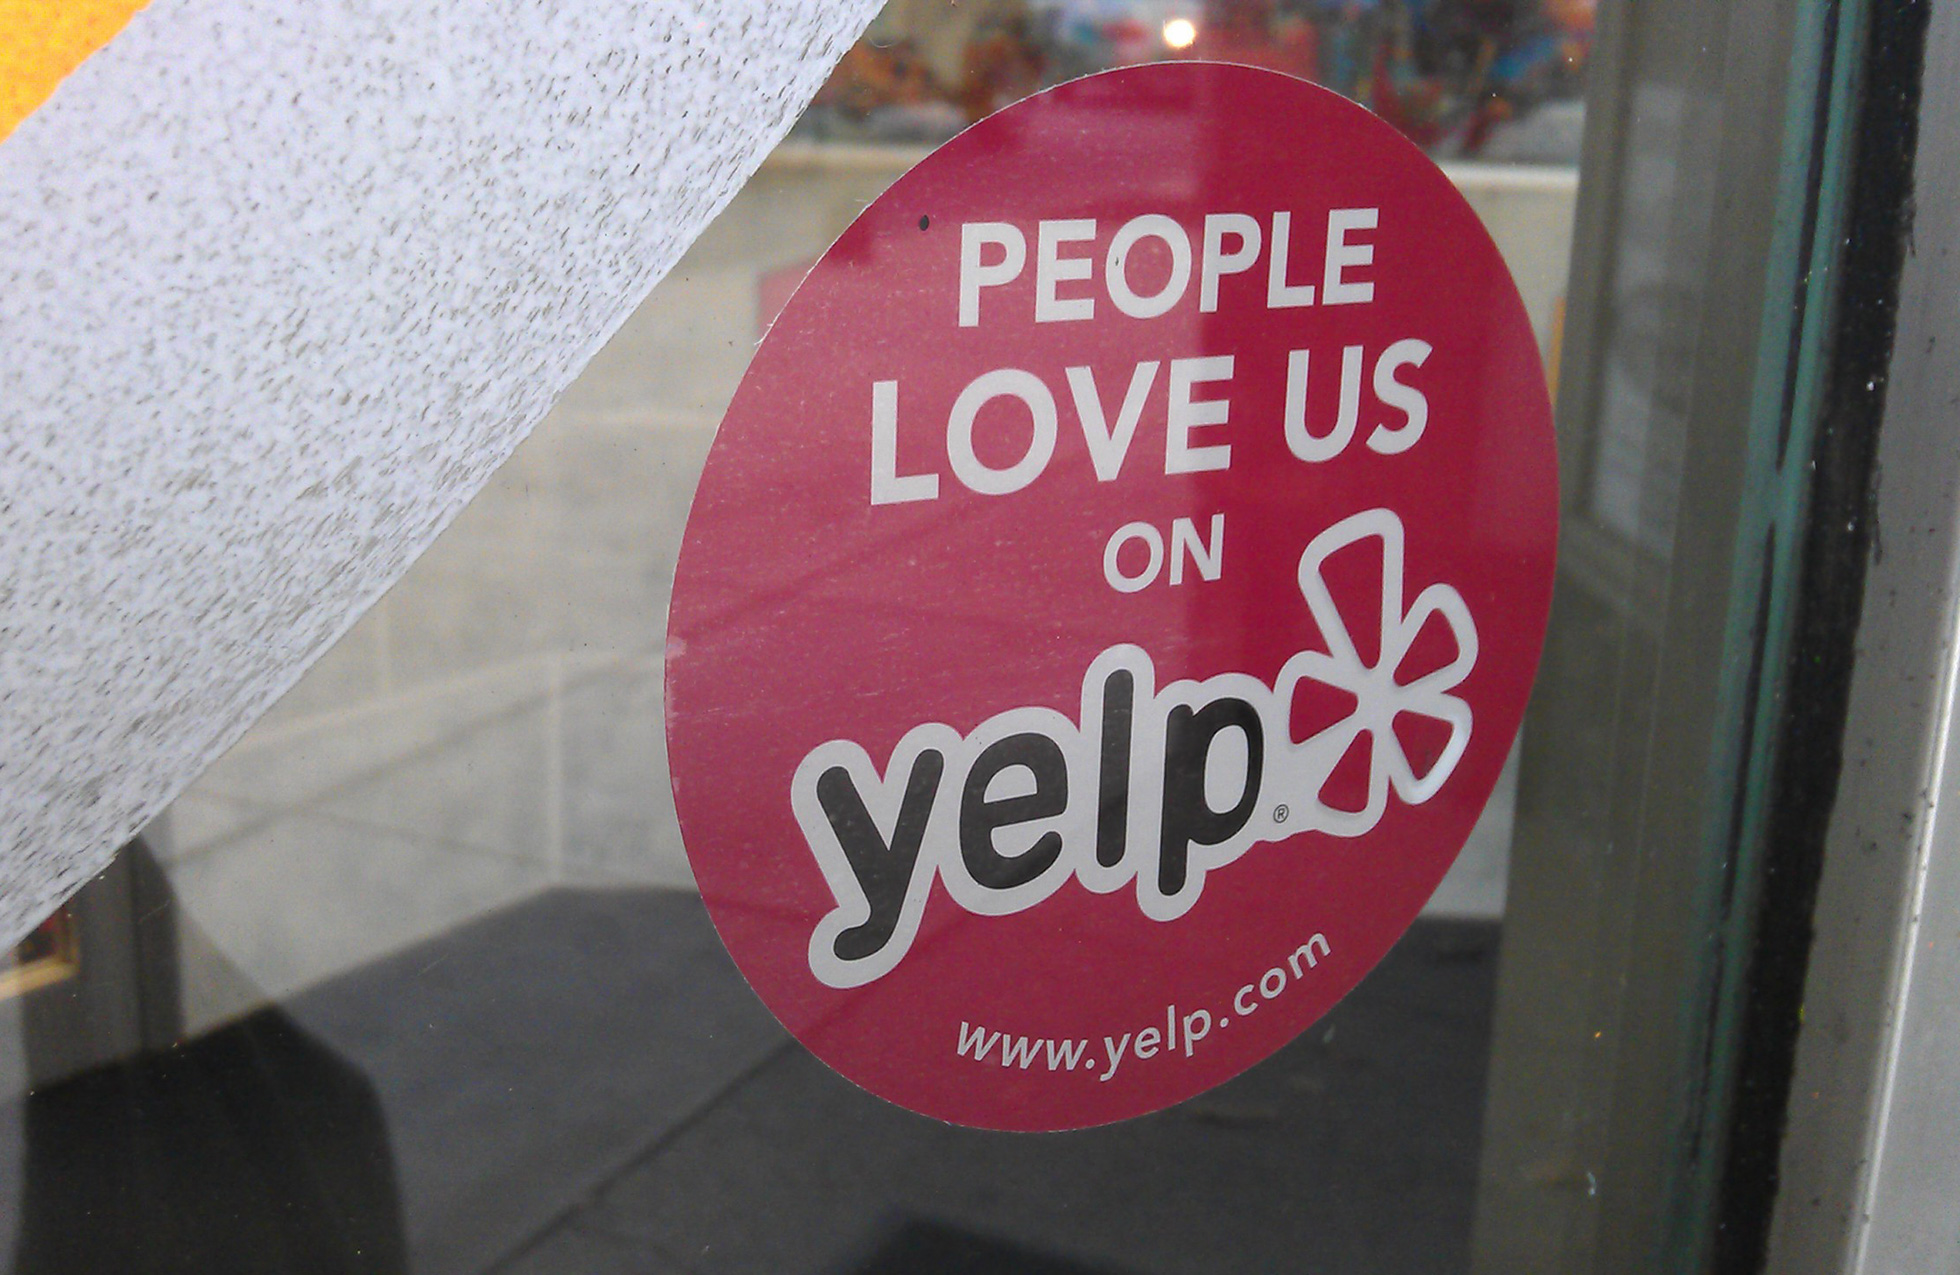 Yelp sticker on a store window